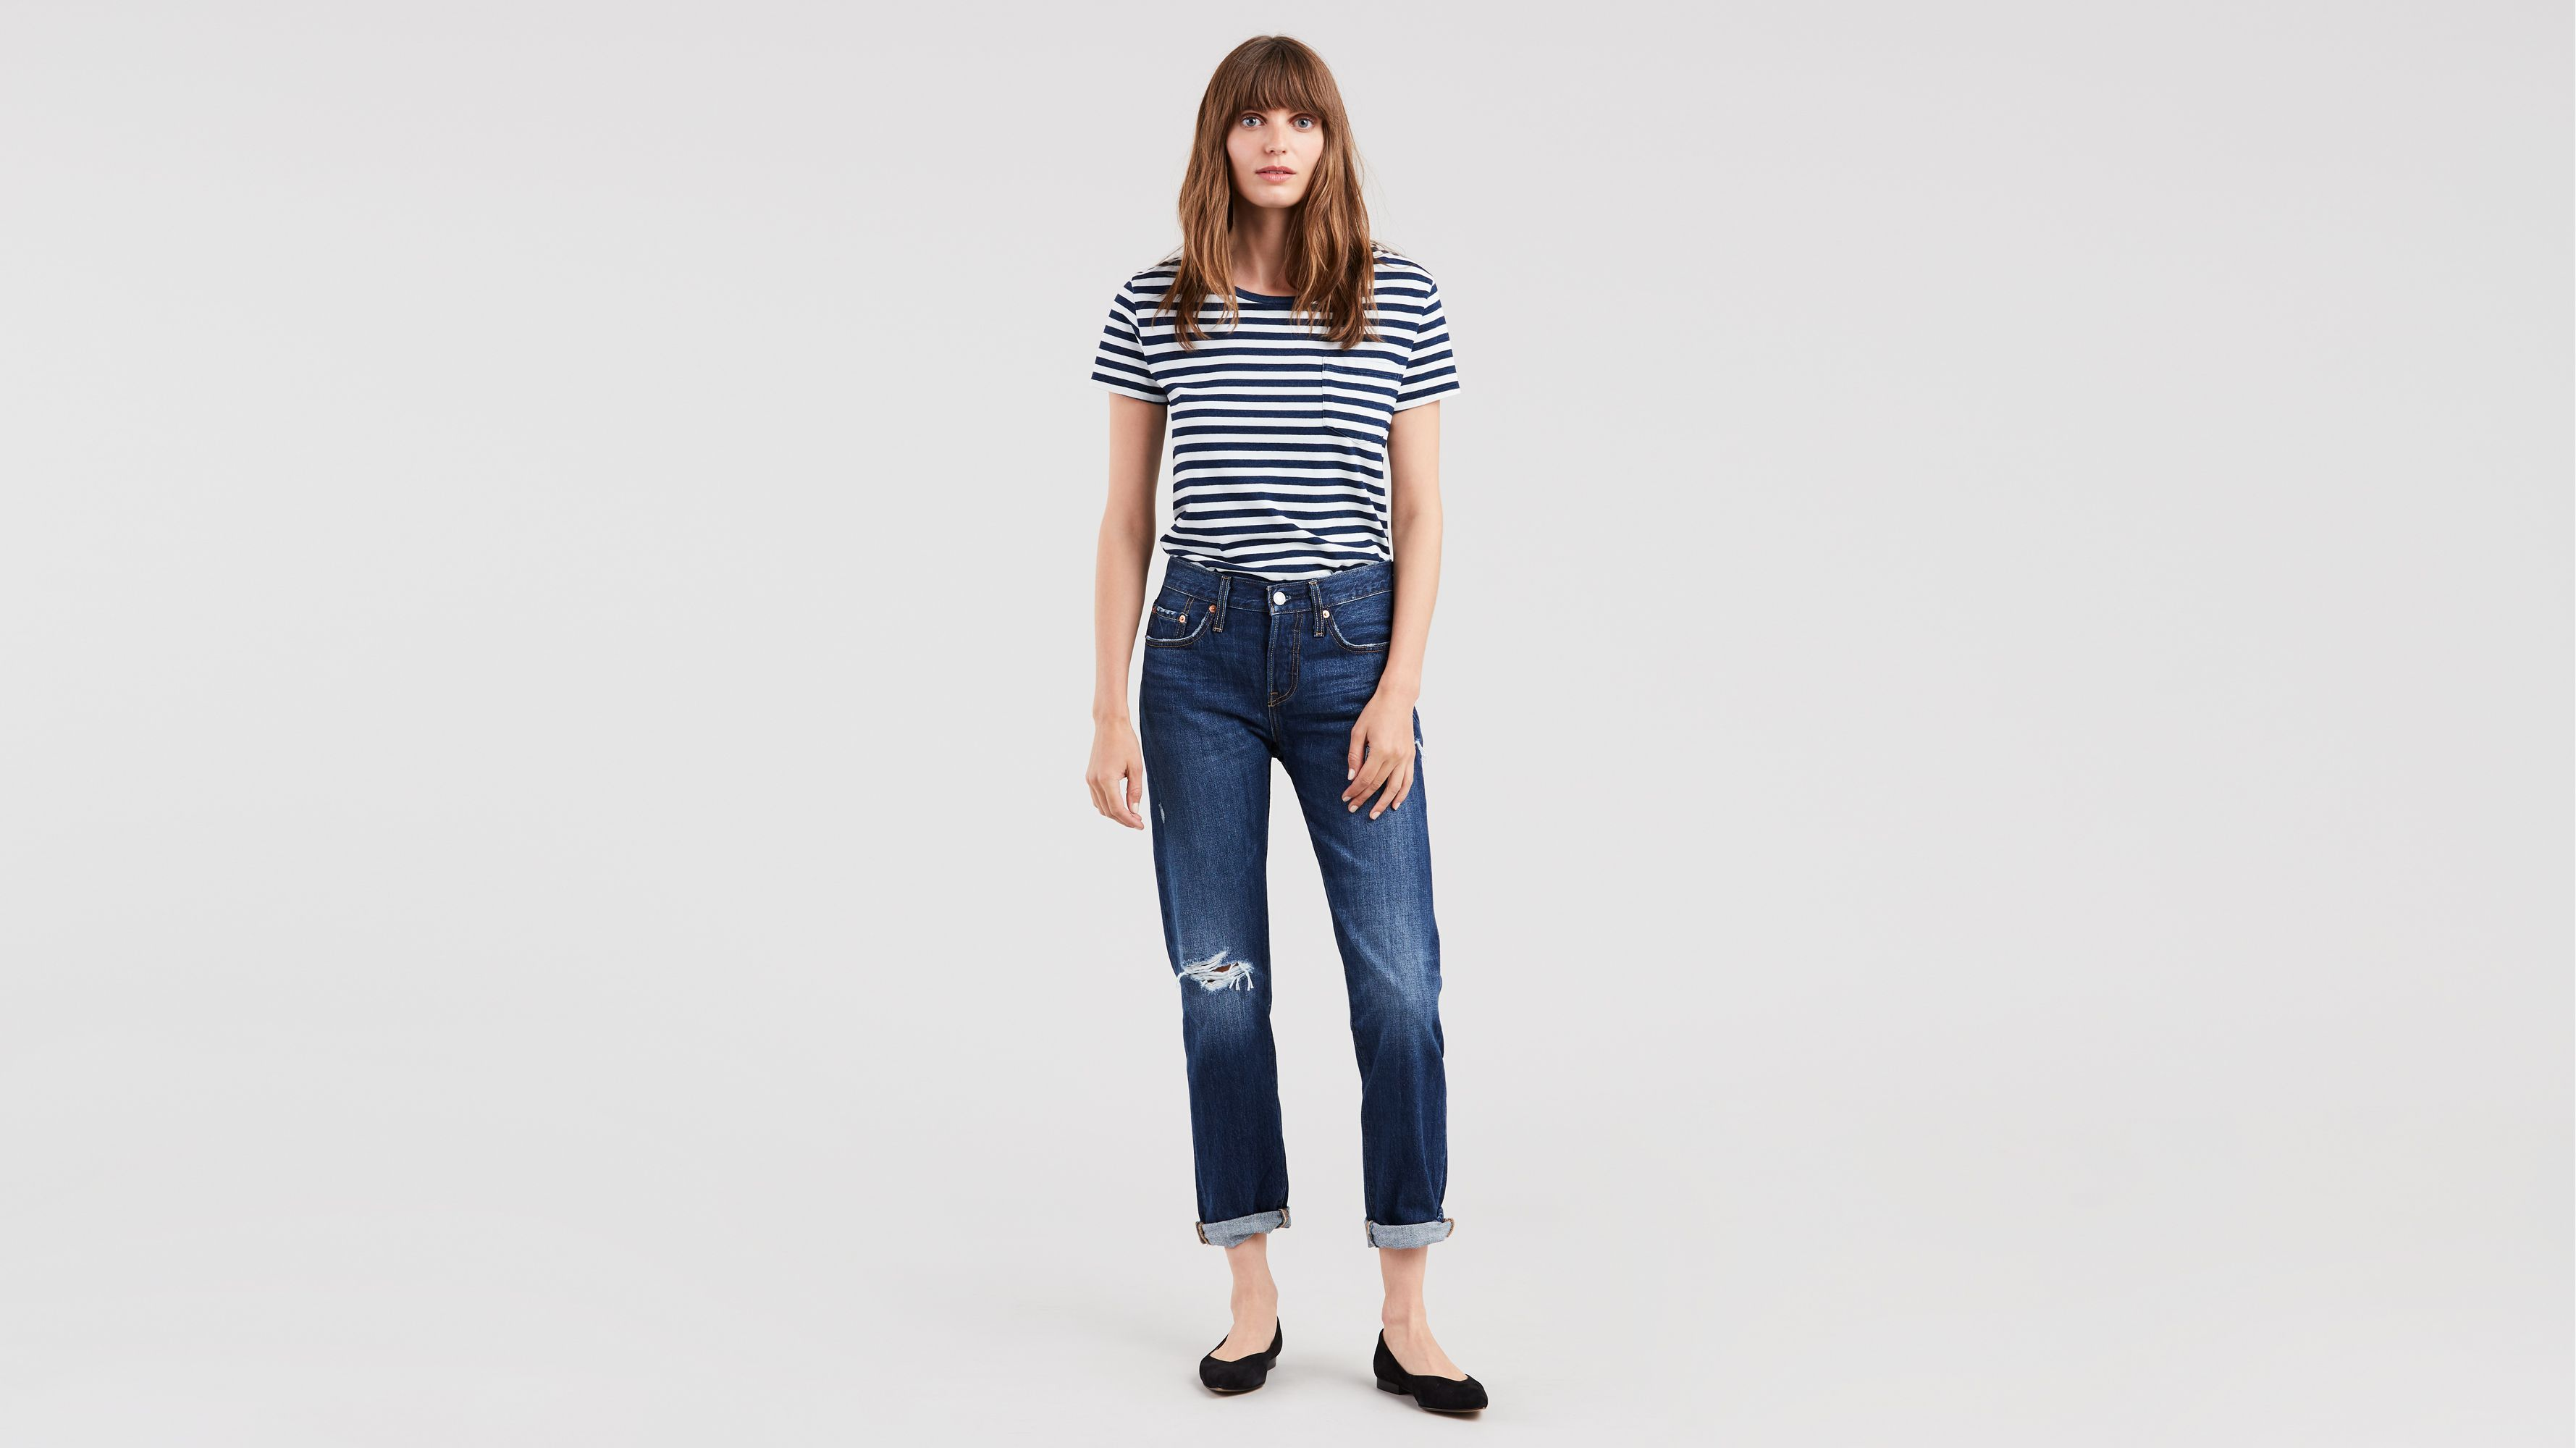 Jeans Levi's® More Girlfriend Ripped Distressed Boyfriend Fit US amp; gwFagdq